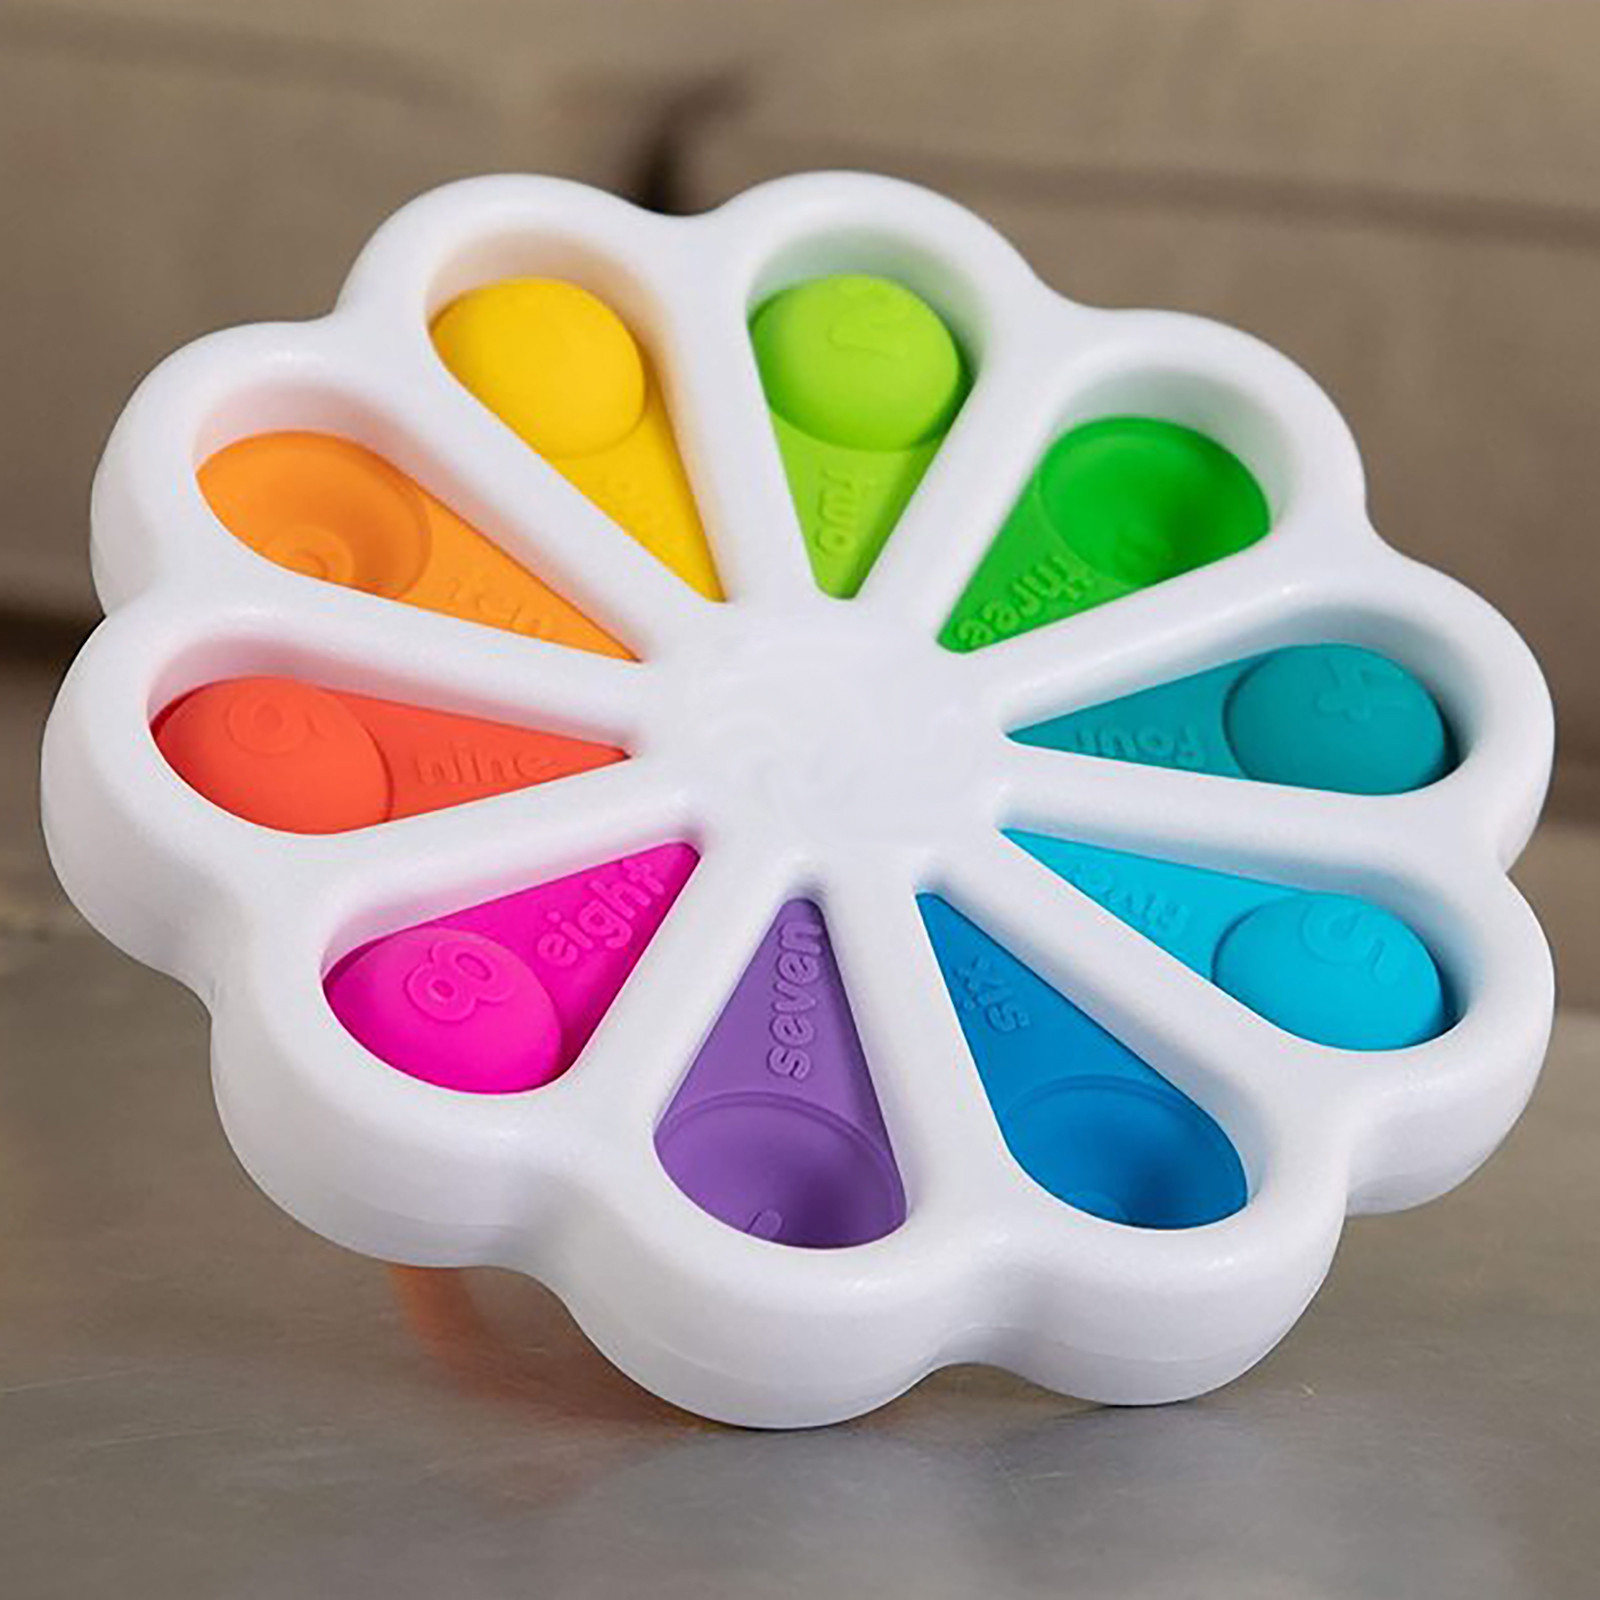 Fidget Simple Dimple Toy Flower Fidget Toys Stress Relief Hand Toys Early Educational img3